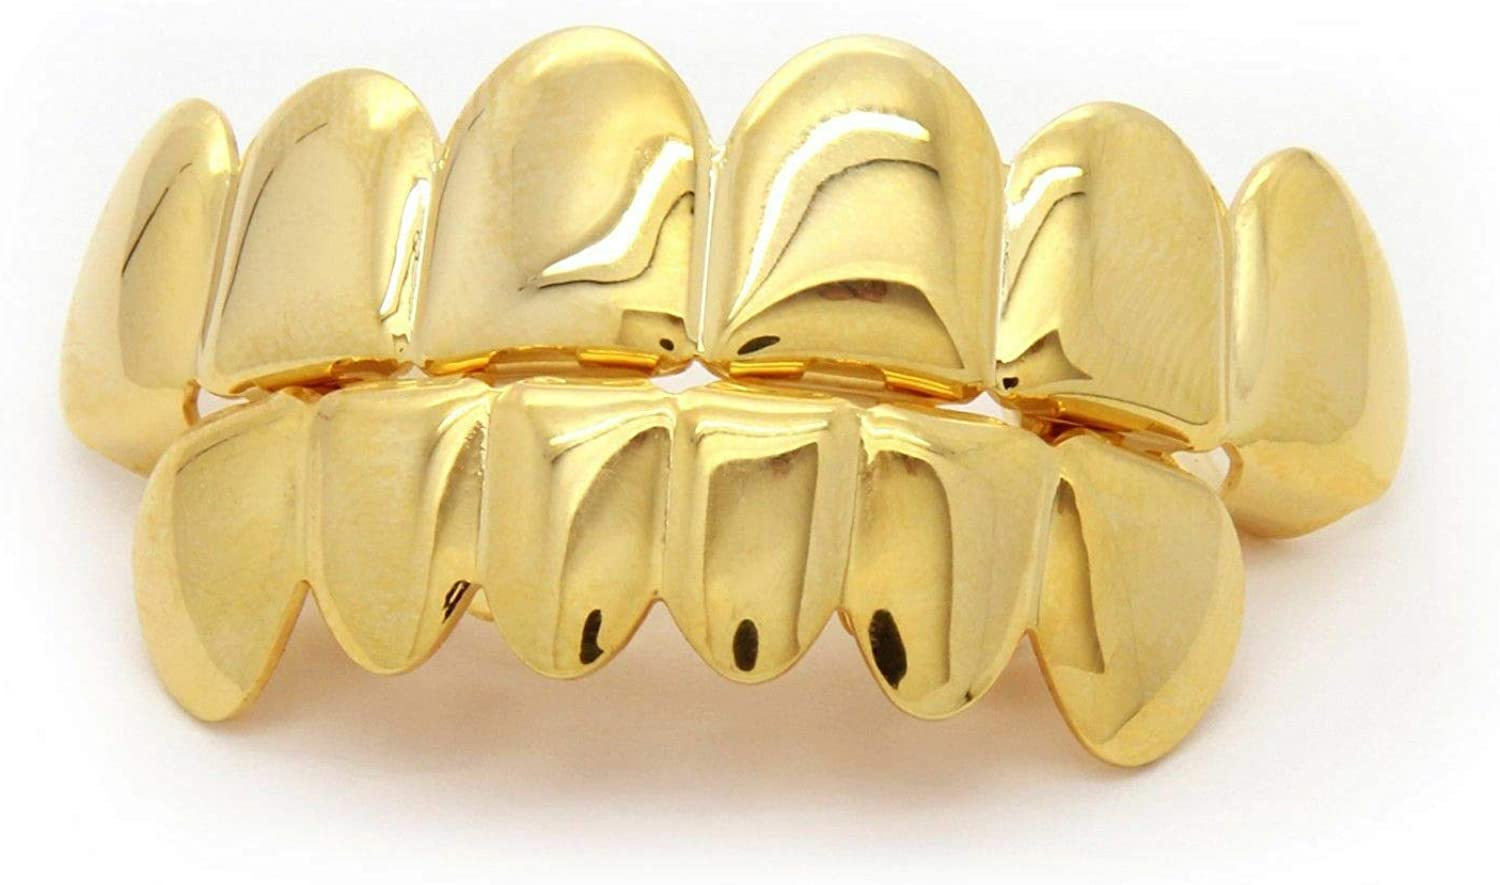 UkrGoods Custom 14K Gold Plated Hip Hop Teeth Grillz Top & Bottom Grill Set w/Tools Body Unique Beautiful Daily Style Stylish Styling Piercings Decoration Aesthetic